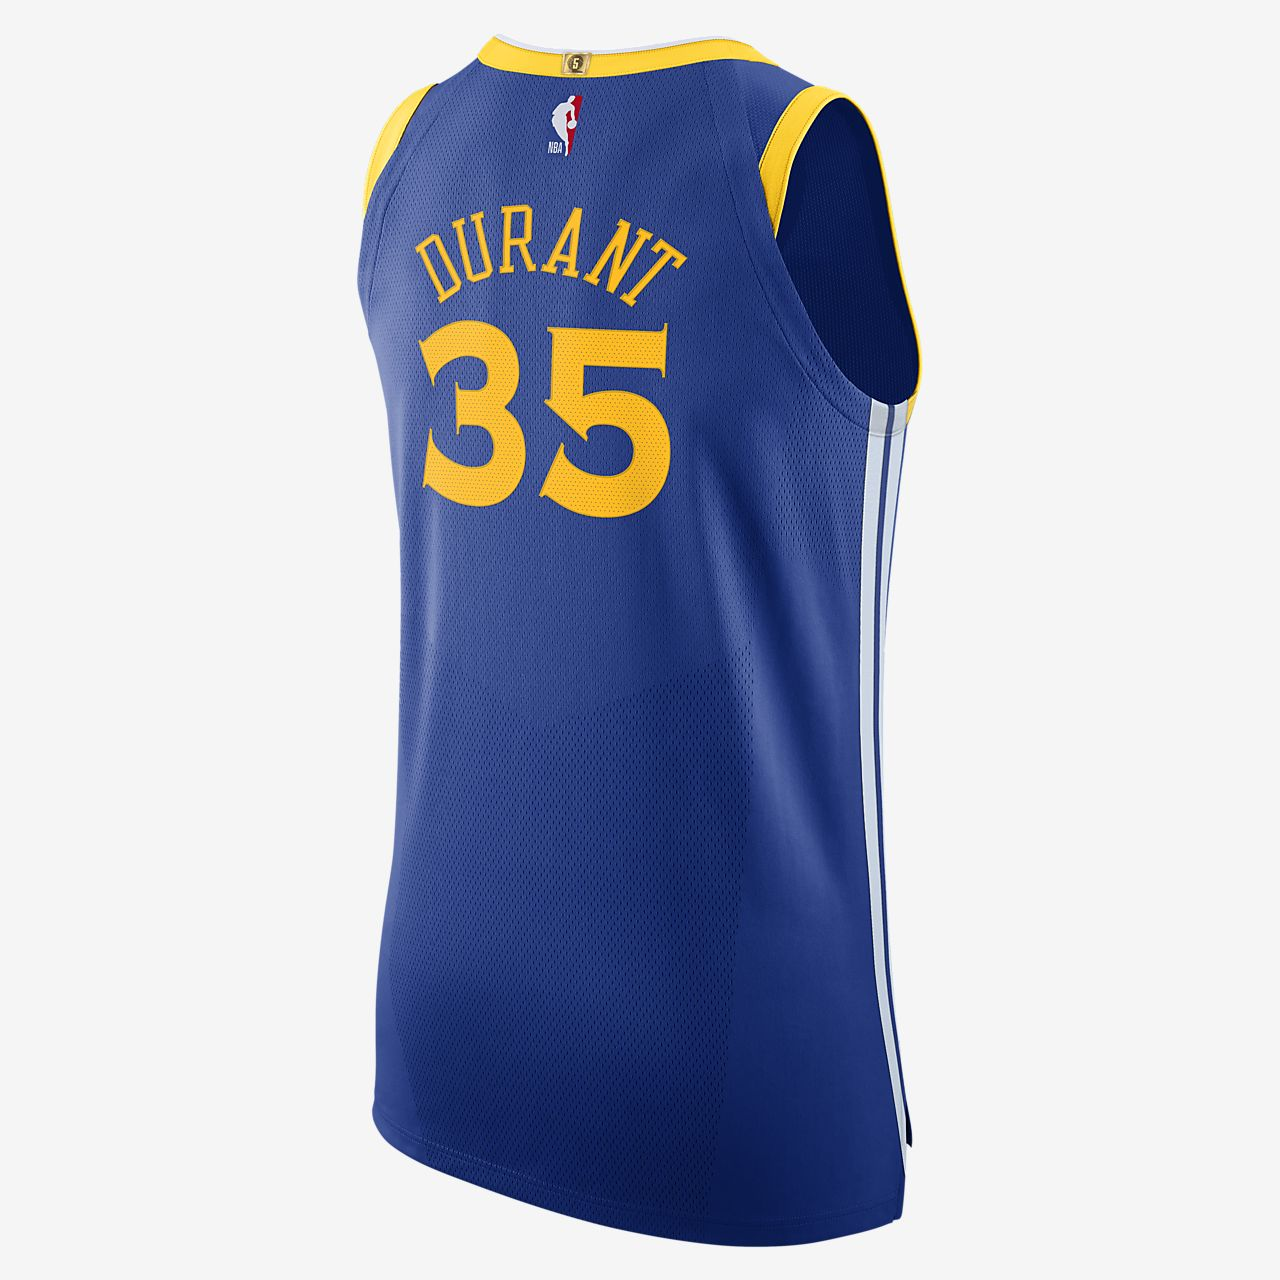 kevin durant backpack review cheap   OFF49% The Largest Catalog ... 445c3ab383290